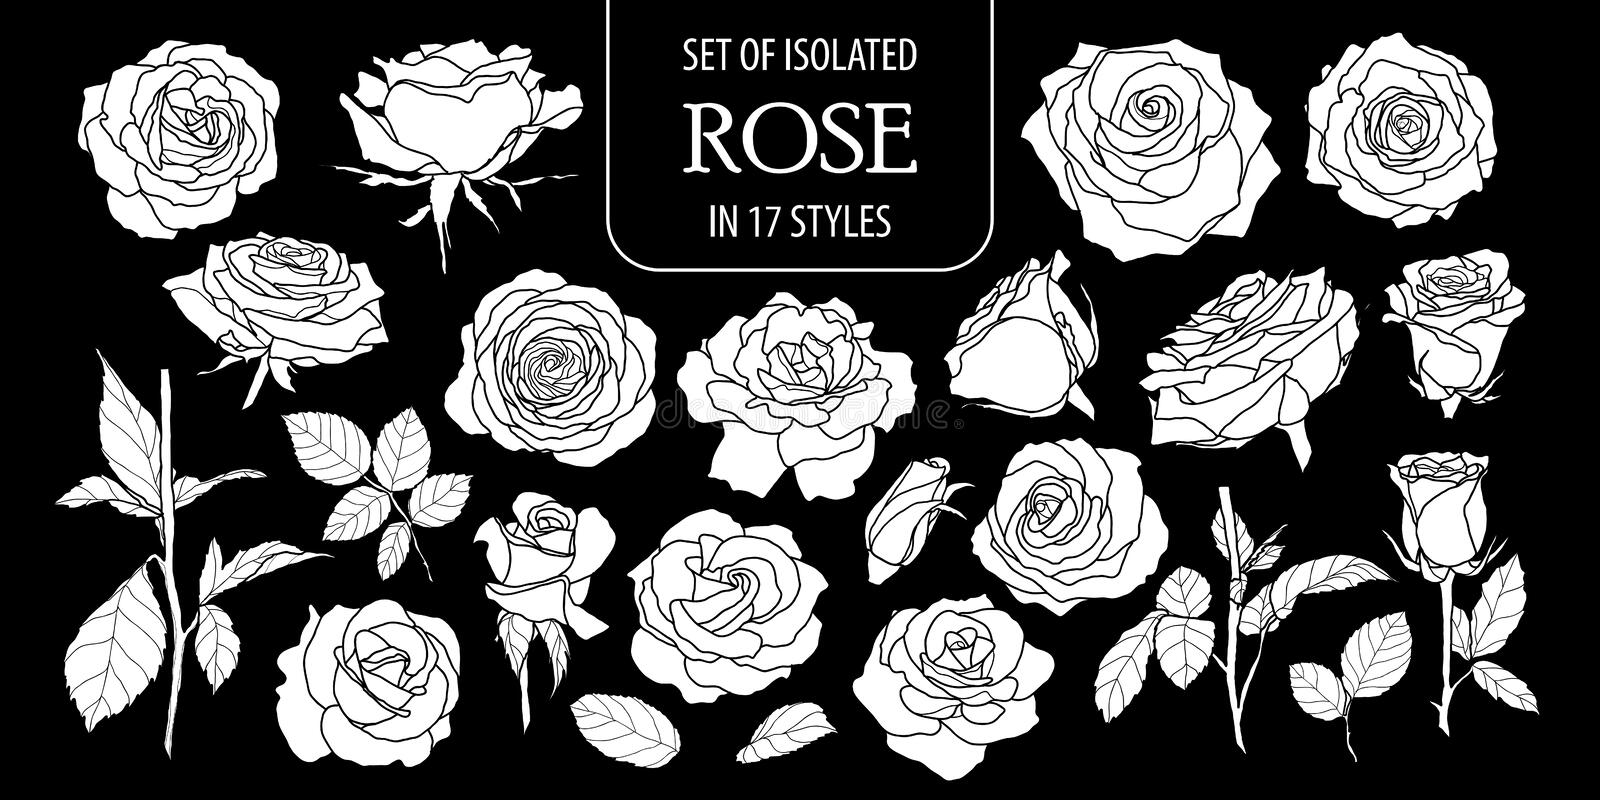 Set of isolated white silhouette rose in 17 styles .Cute hand drawn flower vector illustration in white plane and no outline. vector illustration